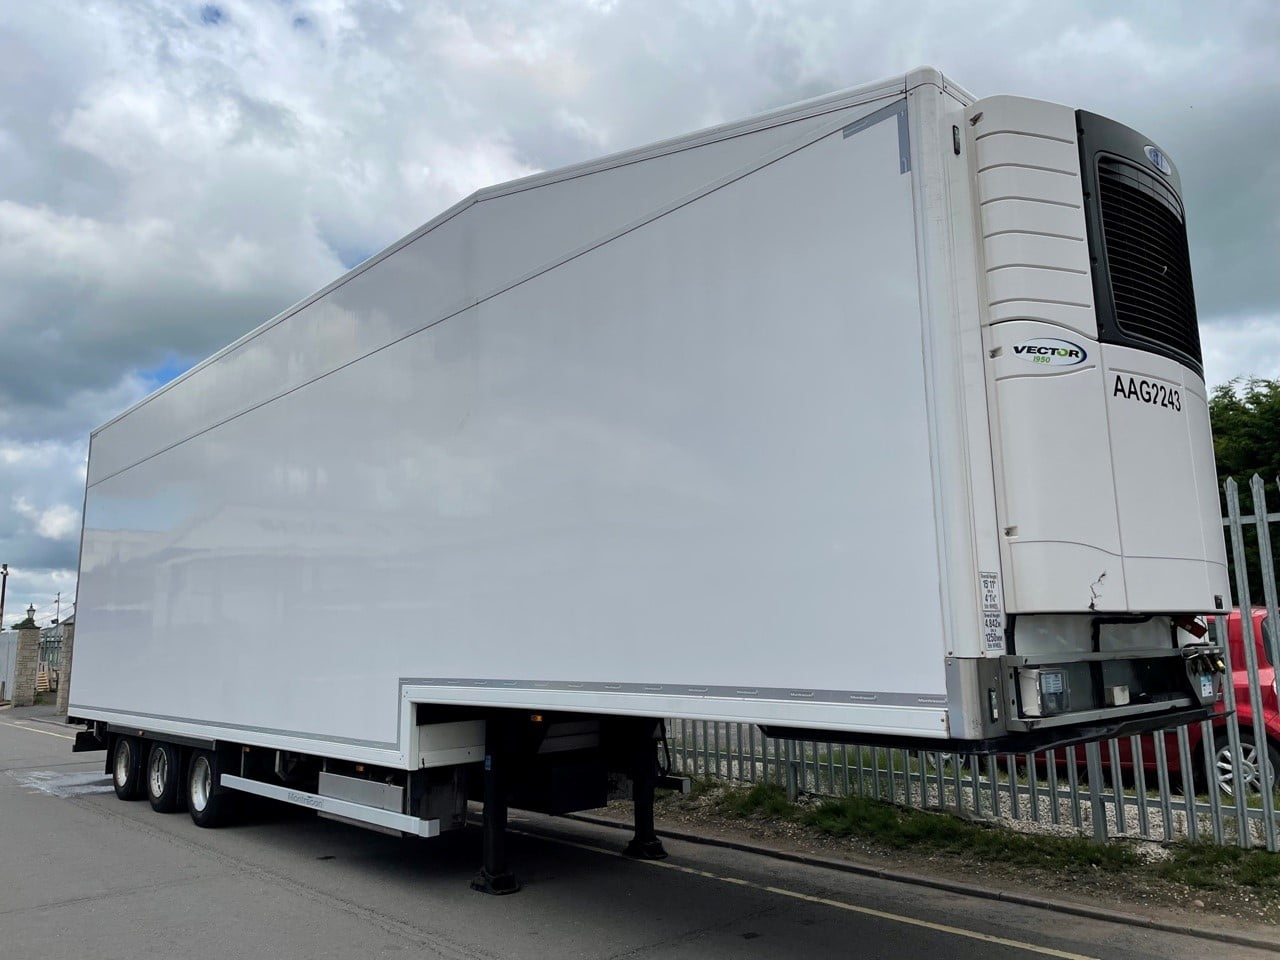 2018 Montracon Fridge Trailer, Carrier Vector 1950 Fridge Engine, 4.84m External Height, BPW Axles, Drum Brakes, Barn Doors, Resin with Chequer Plate Floor, Hydraulic Double Deck, 19.5 Inch Wheels, Choice & Finance Options Available.